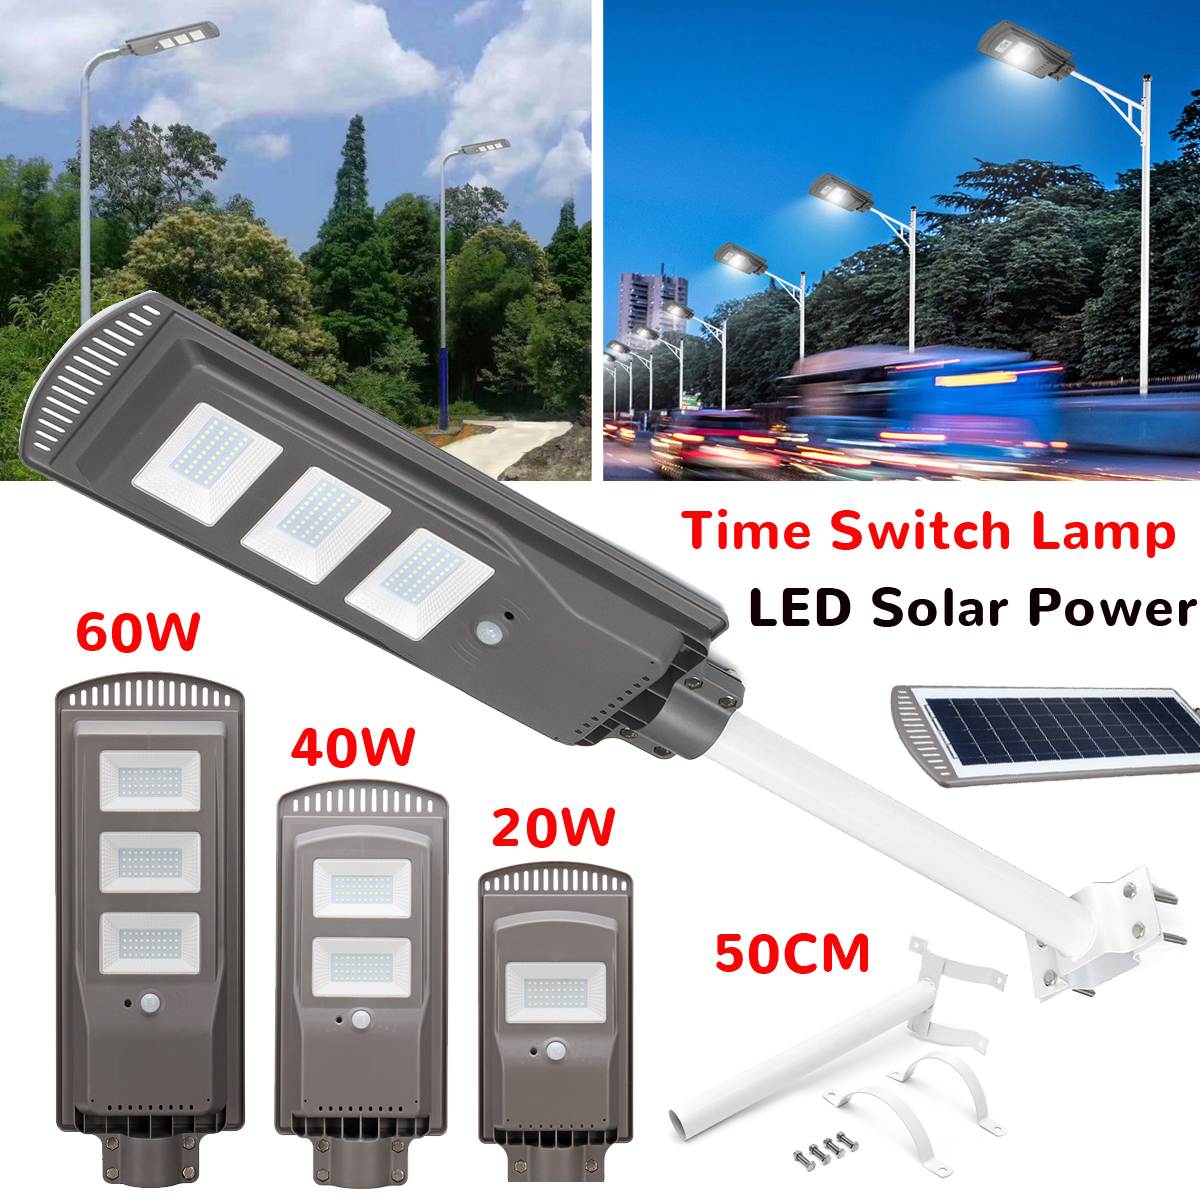 20/40/60W Solar Powered Panel LED Solar Street Light All-in-1 Time Switch Waterproof IP67 Wall Lighting Lamp for Outdoor Garden high lumen 60w all in one solar street light south africa for commerical lighting residential lighting